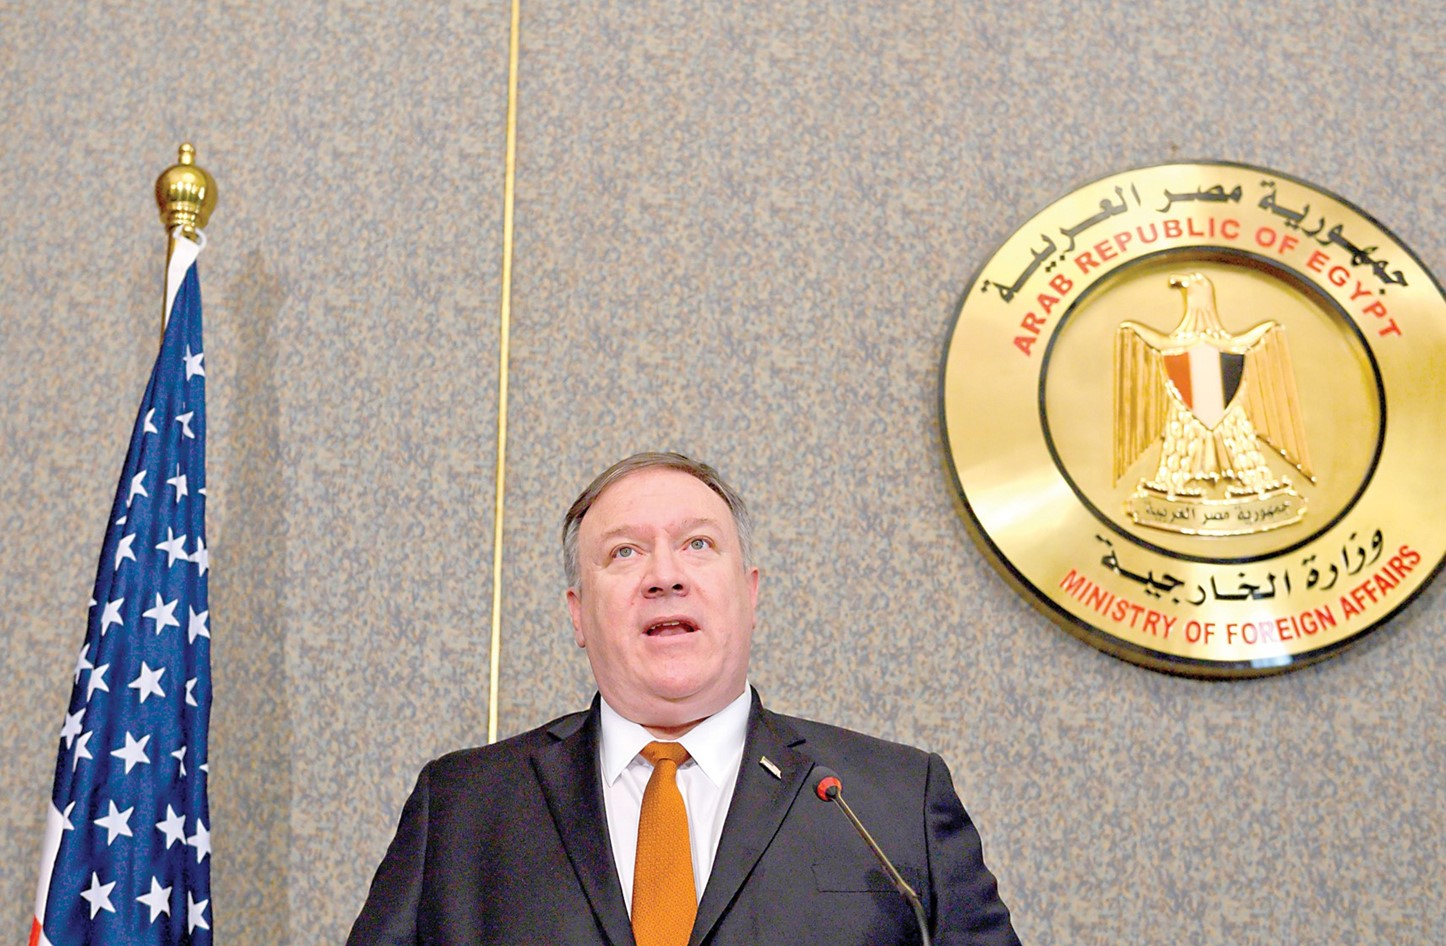 Newspaper: Iraqi officials have asked Pompeo to stay US troops in Iraq INAF_20190110233103181.jpg?404=d&h=946&w=1446&scale=both&mode=crop&c.focus=faces&c.finalmode=crop&f.threshold=2,4&f